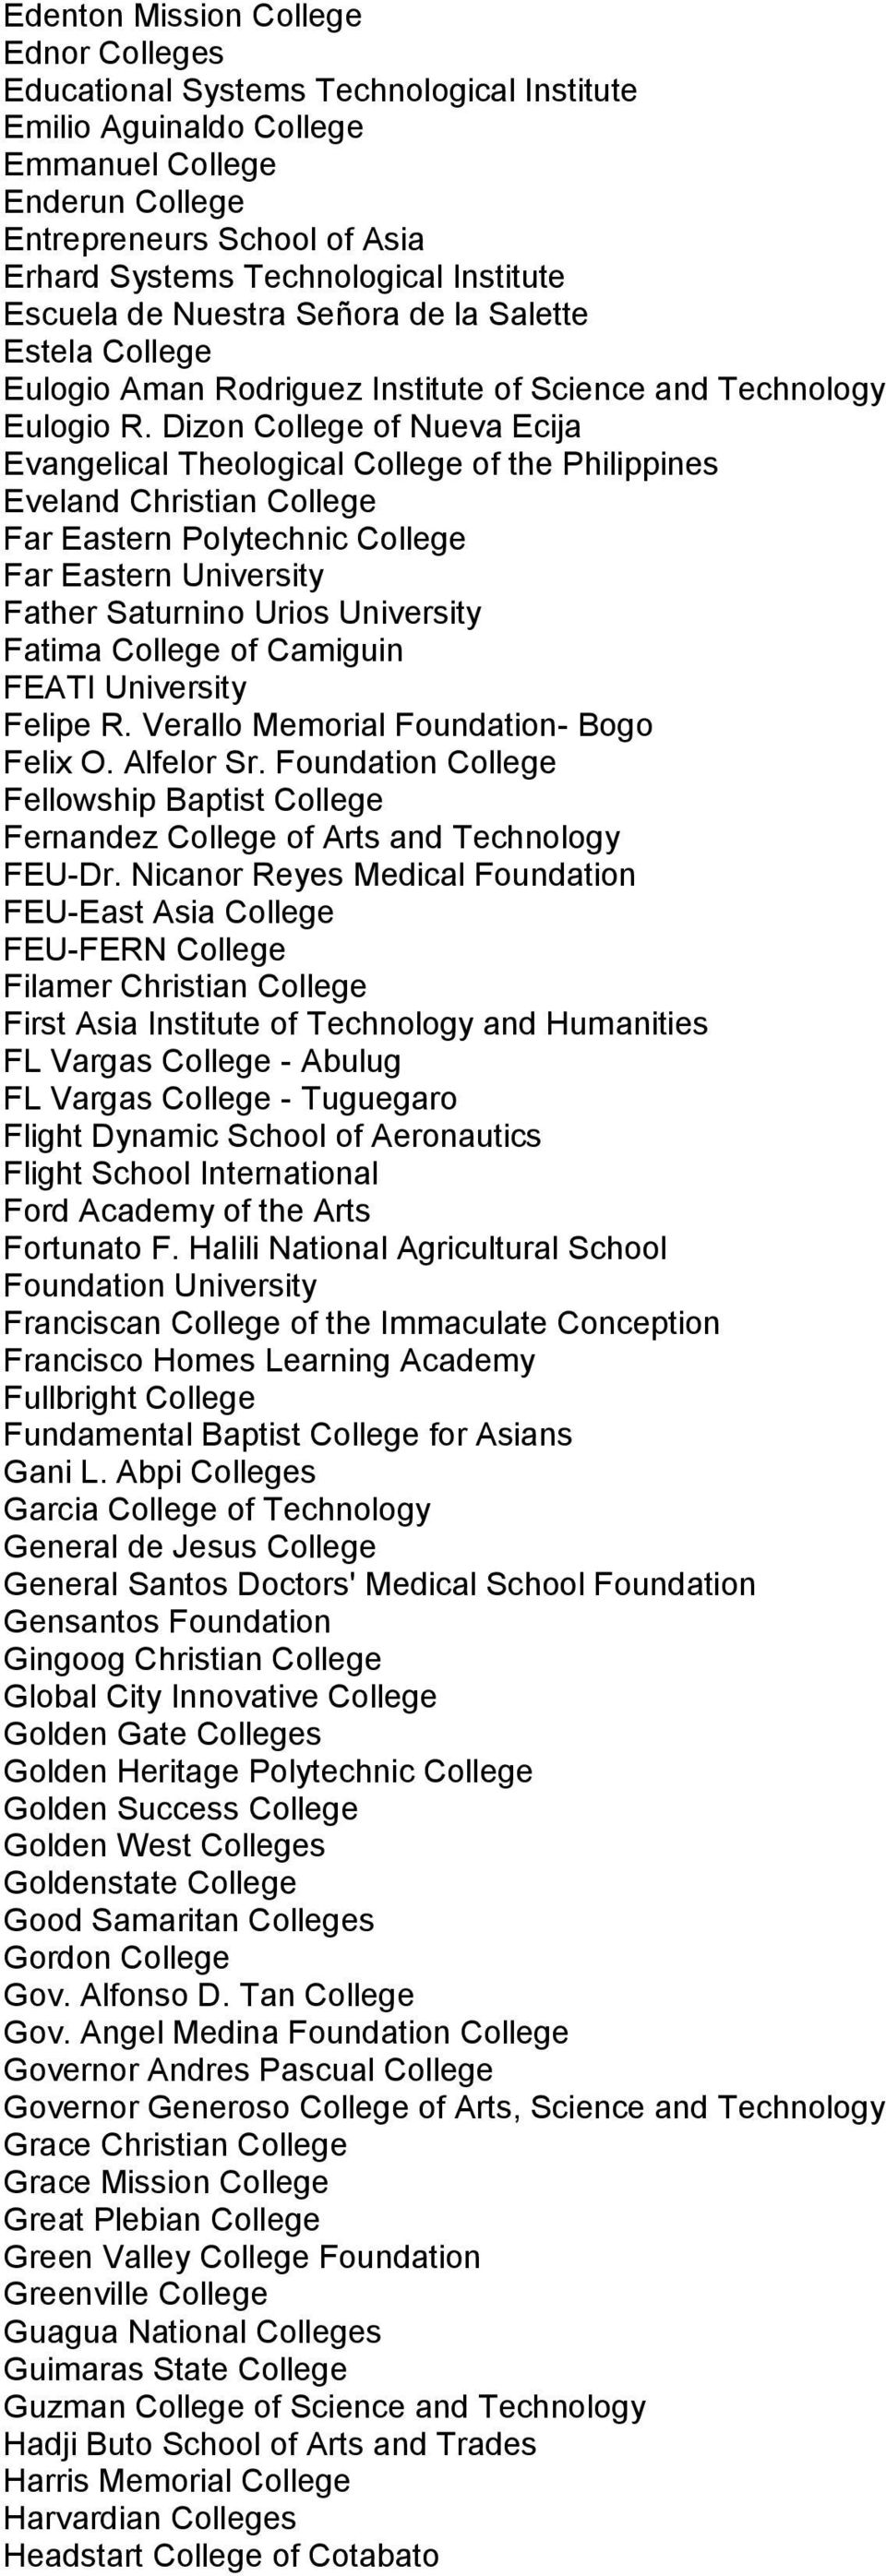 Dizon College of Nueva Ecija Evangelical Theological College of the Philippines Eveland Christian College Far Eastern Polytechnic College Far Eastern University Father Saturnino Urios University